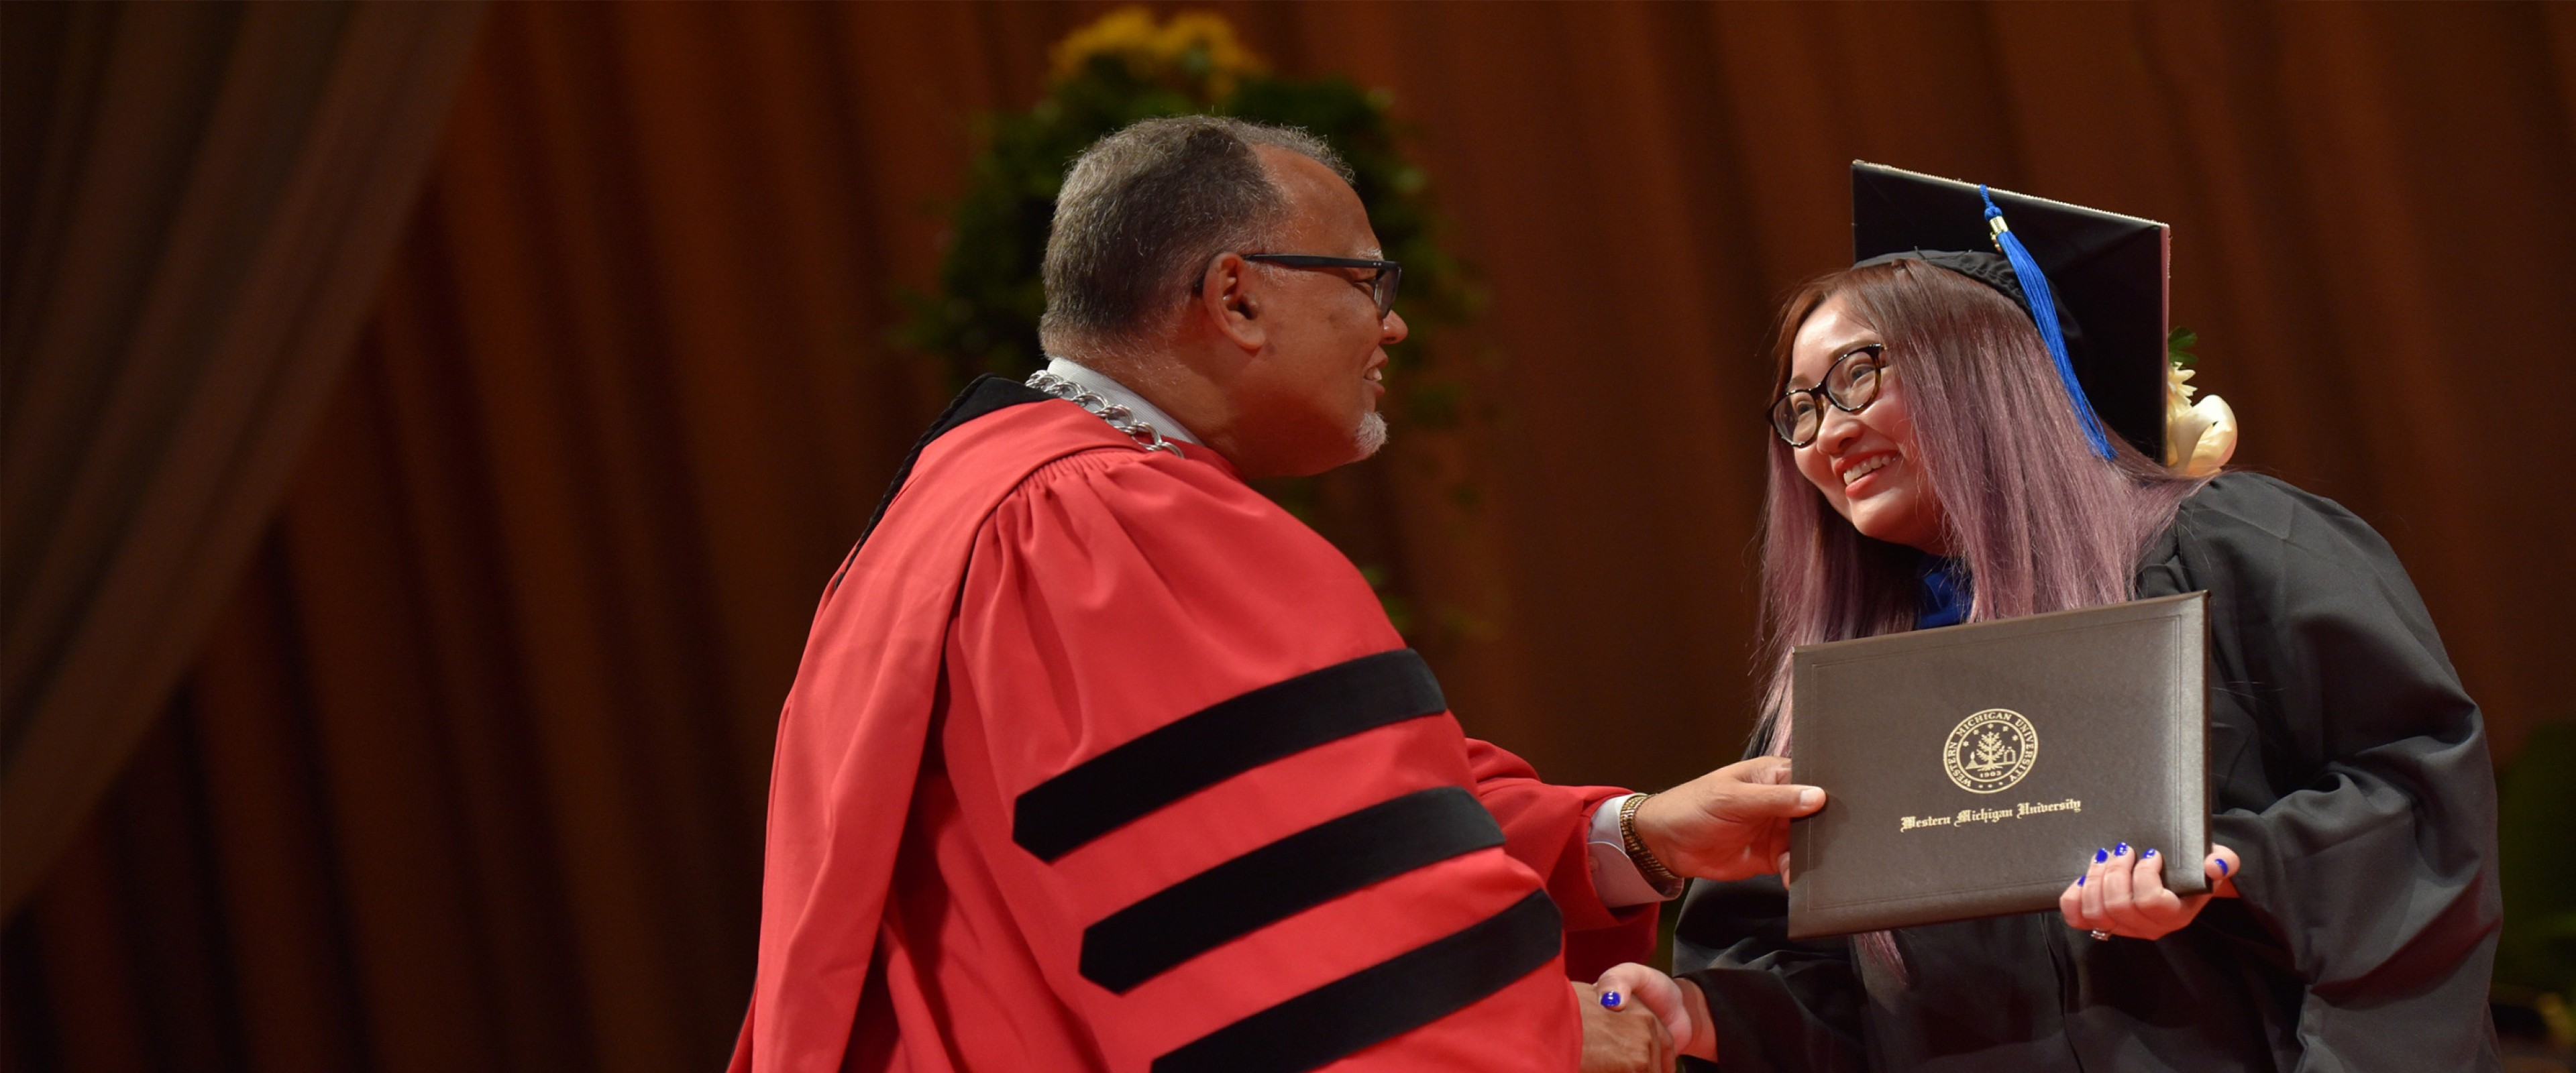 president montgomery shakes the hand of a graduate on stage